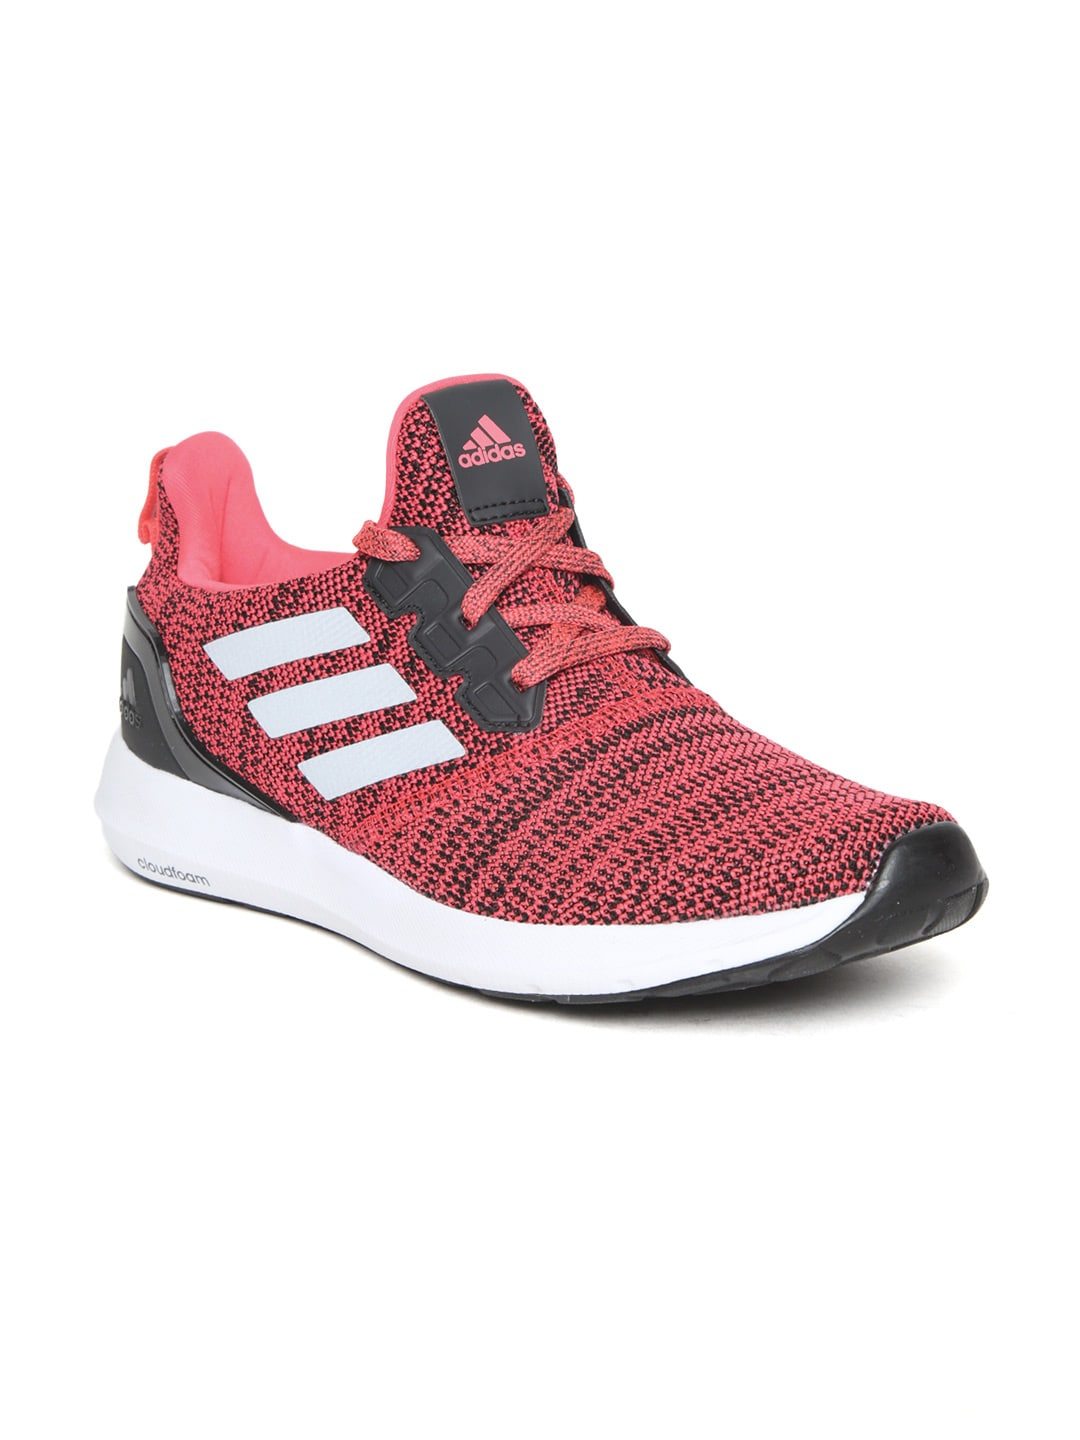 san francisco ae976 639a1 Sports Shoes - Buy Sport Shoes For Men  Women Online  Myntra